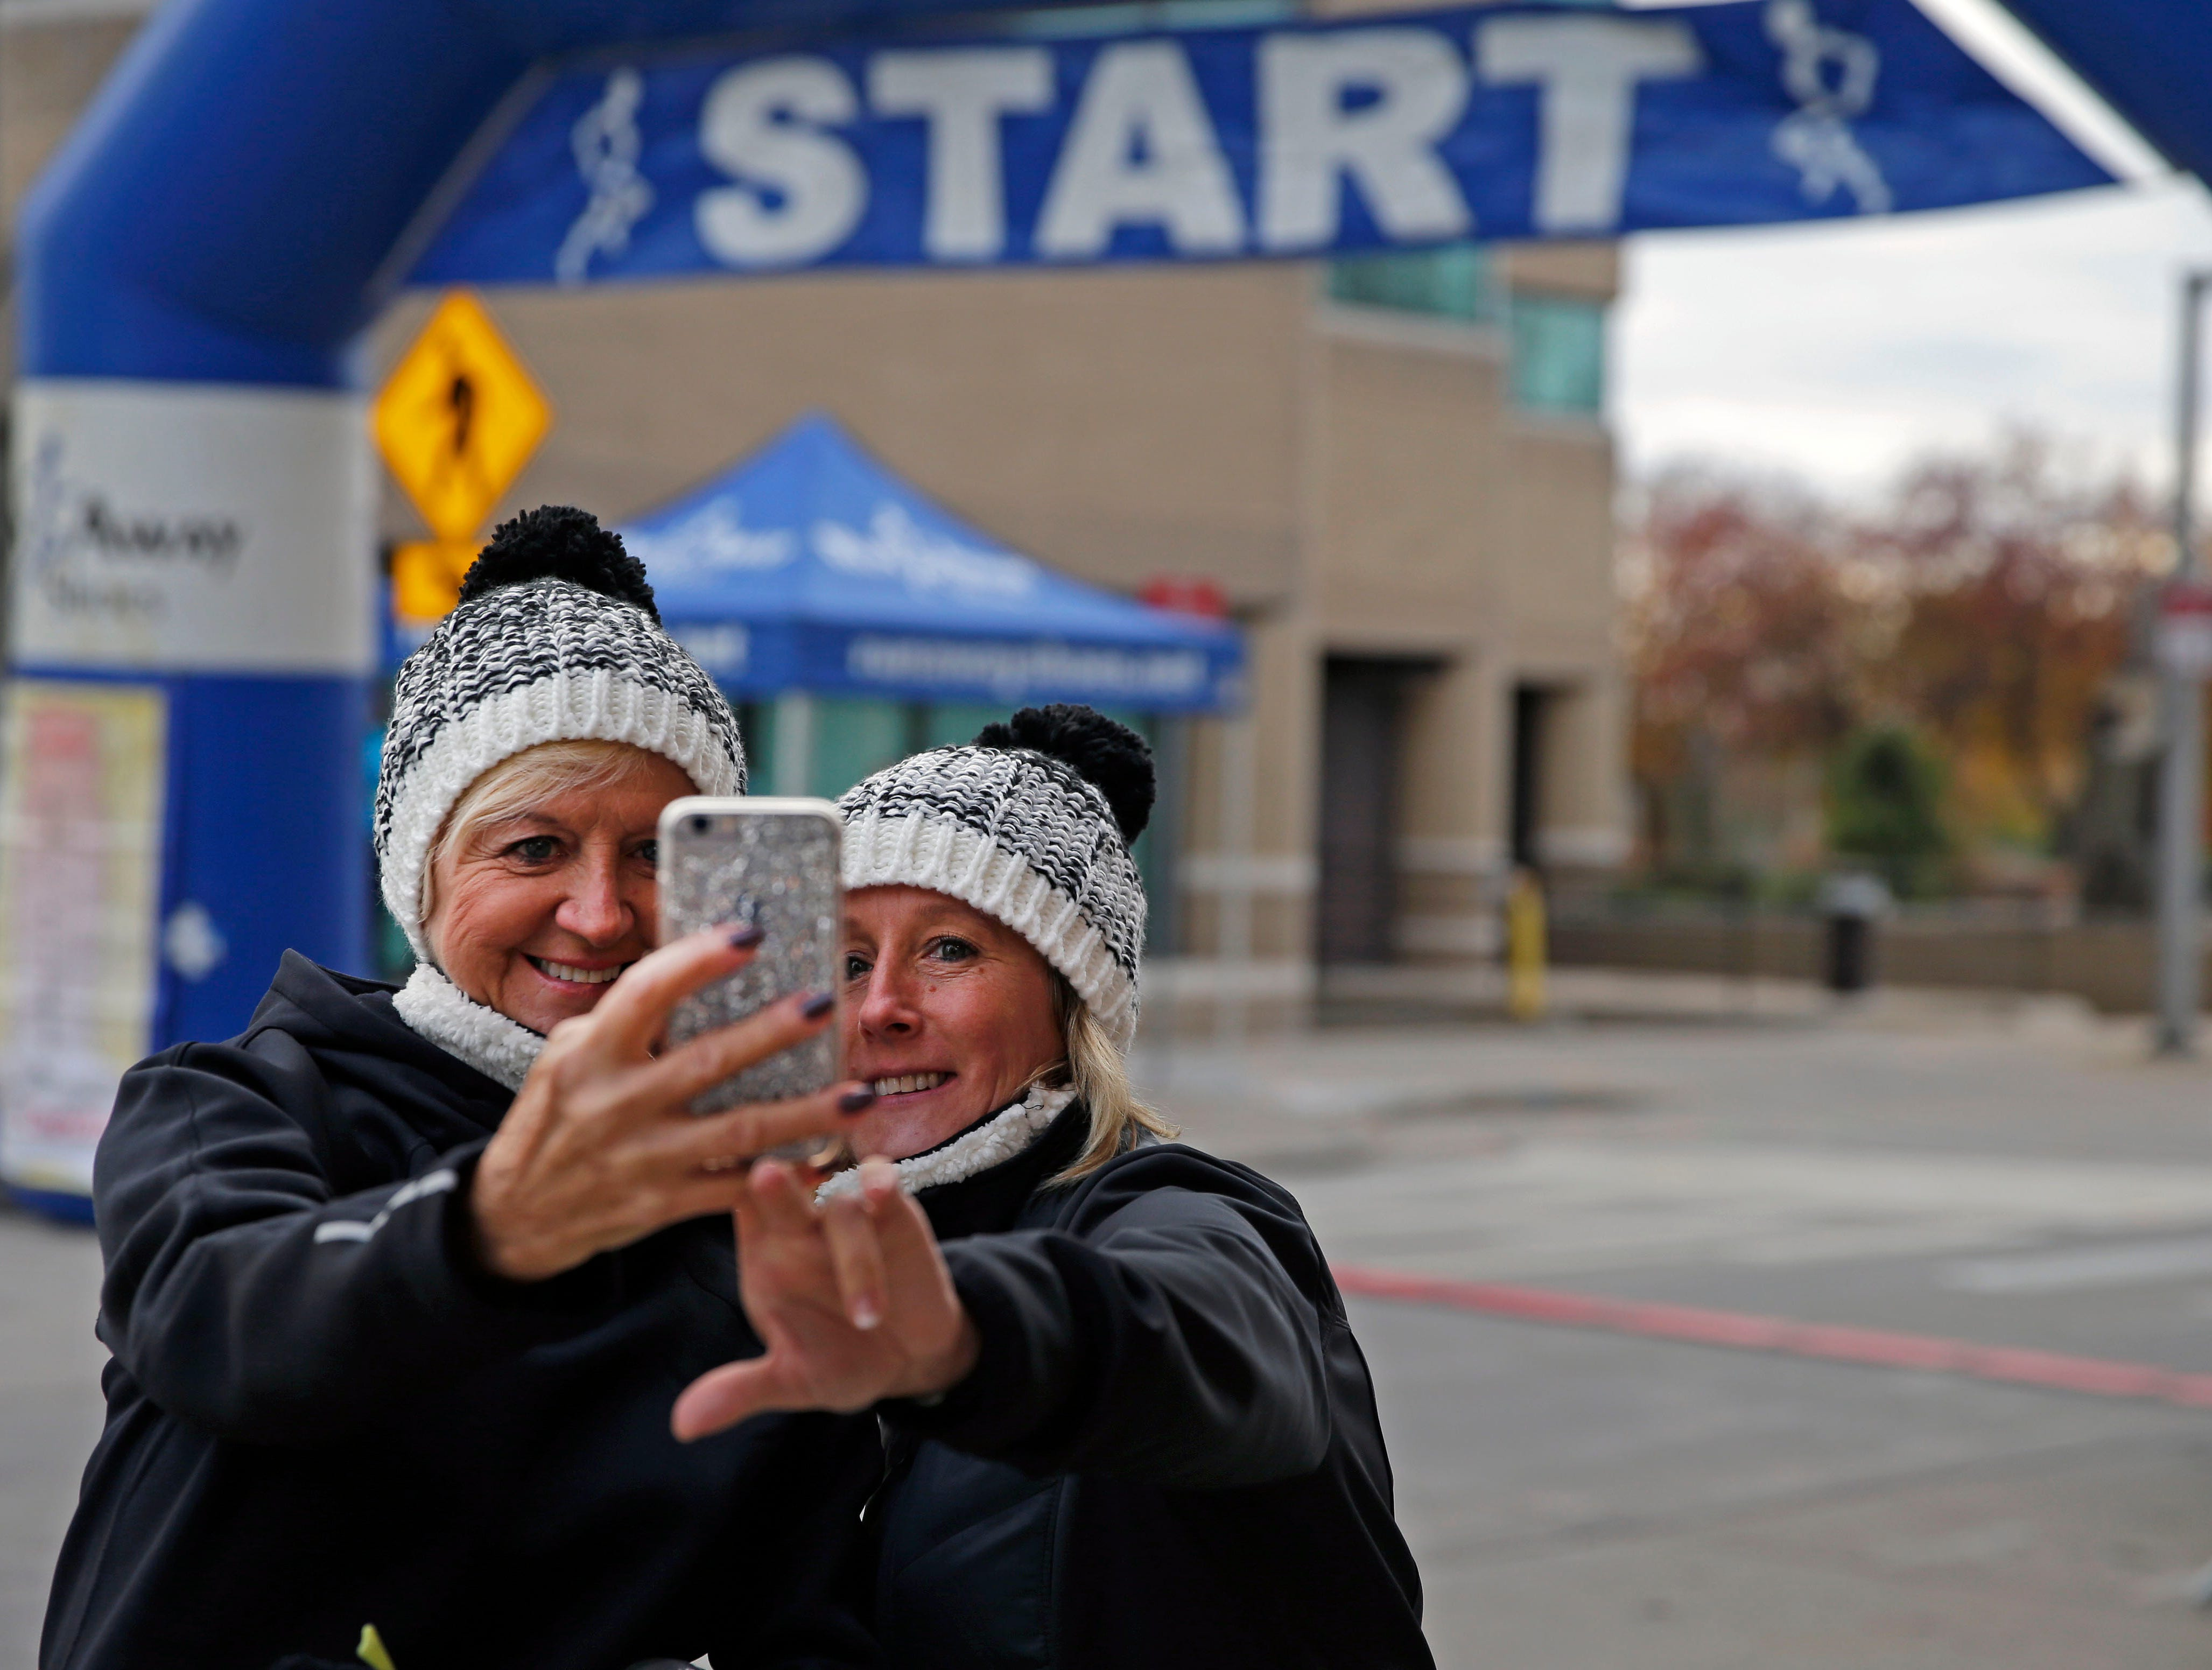 Felicia Hazen (left) and Lisa Mahan get a photo at the start before the 4th annual Appleton Houdini 10K takes place Saturday, November 3, 2018, in Appleton, Wis.Ron Page/USA TODAY NETWORK-Wisconsin